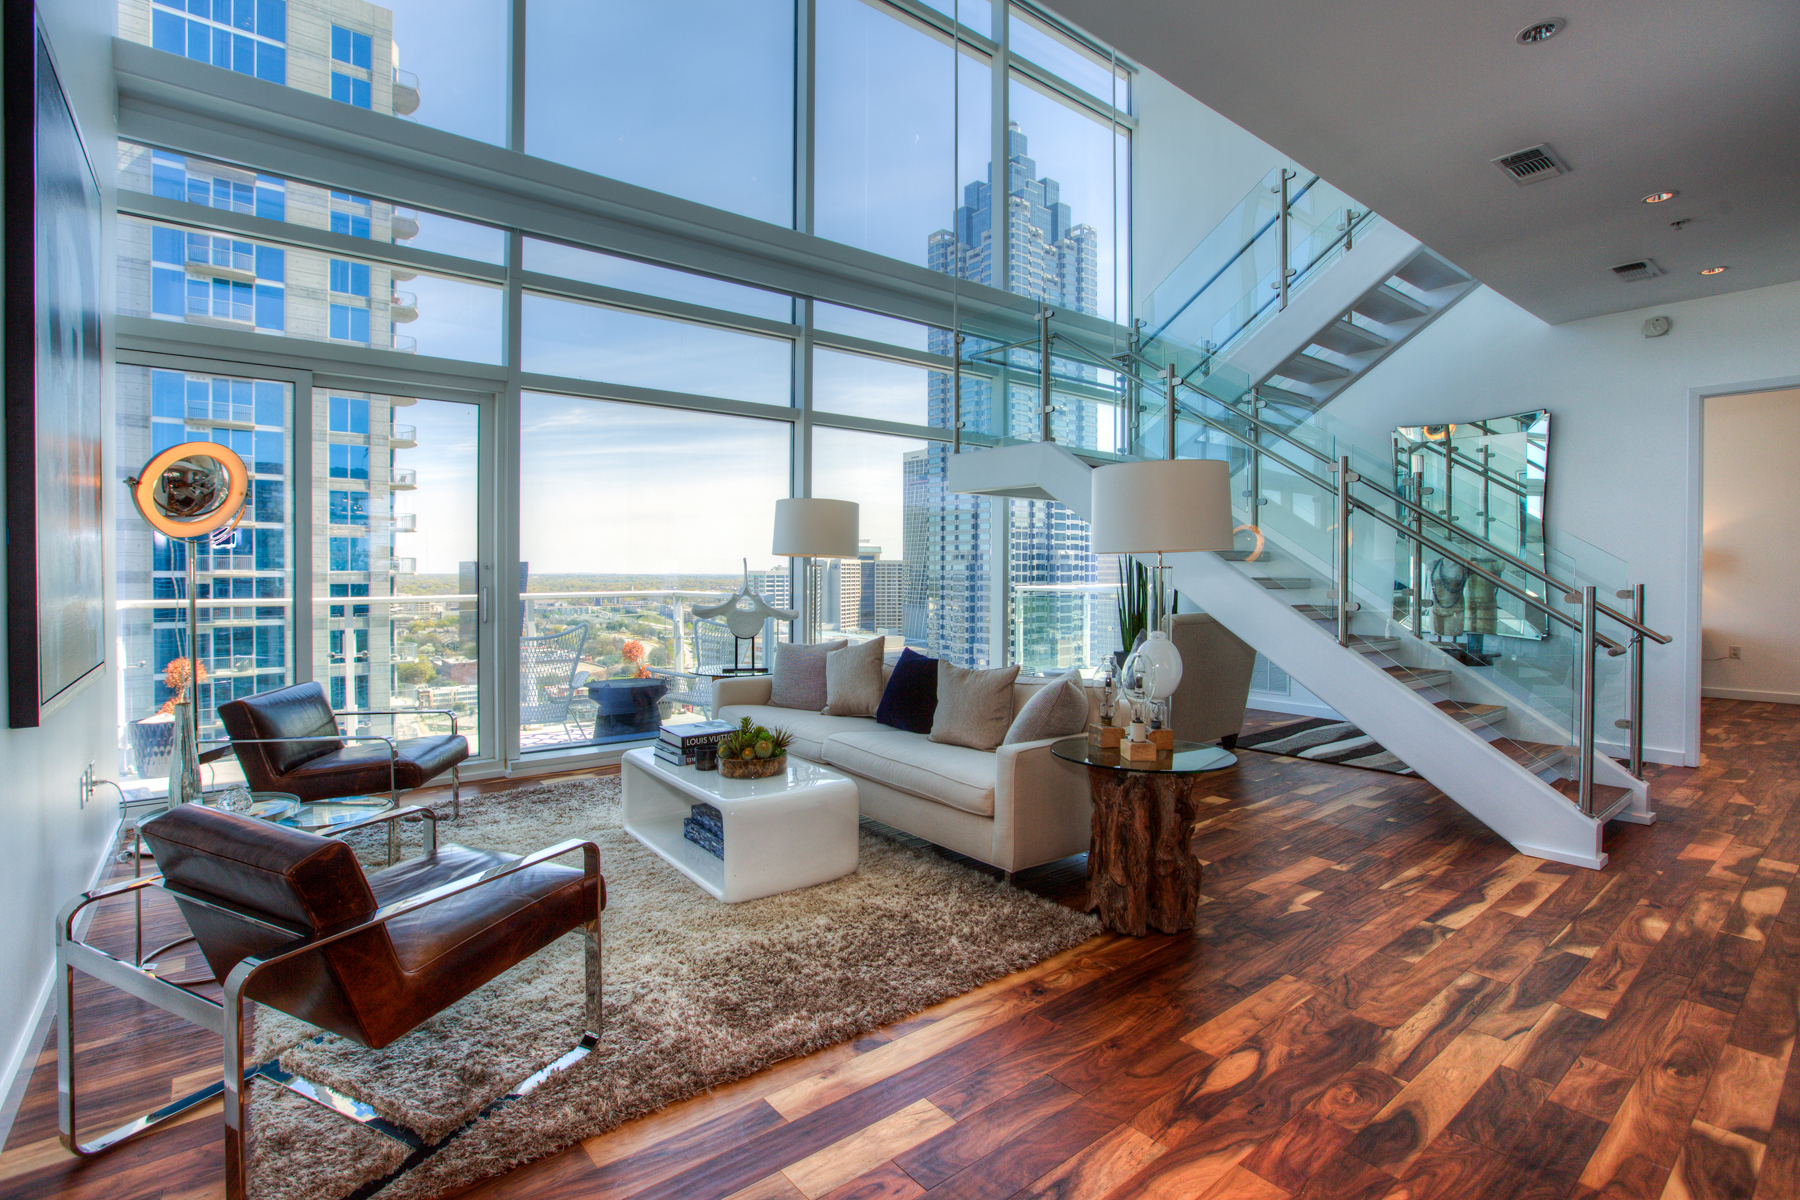 Кондоминиум для того Продажа на Sophisticated 2-Level Atlanta Penthouse with Luxury Hotel Amenities 45 Ivan Allen Jr Boulevard PH#2706 Atlanta, Джорджия 30308 Соединенные Штаты